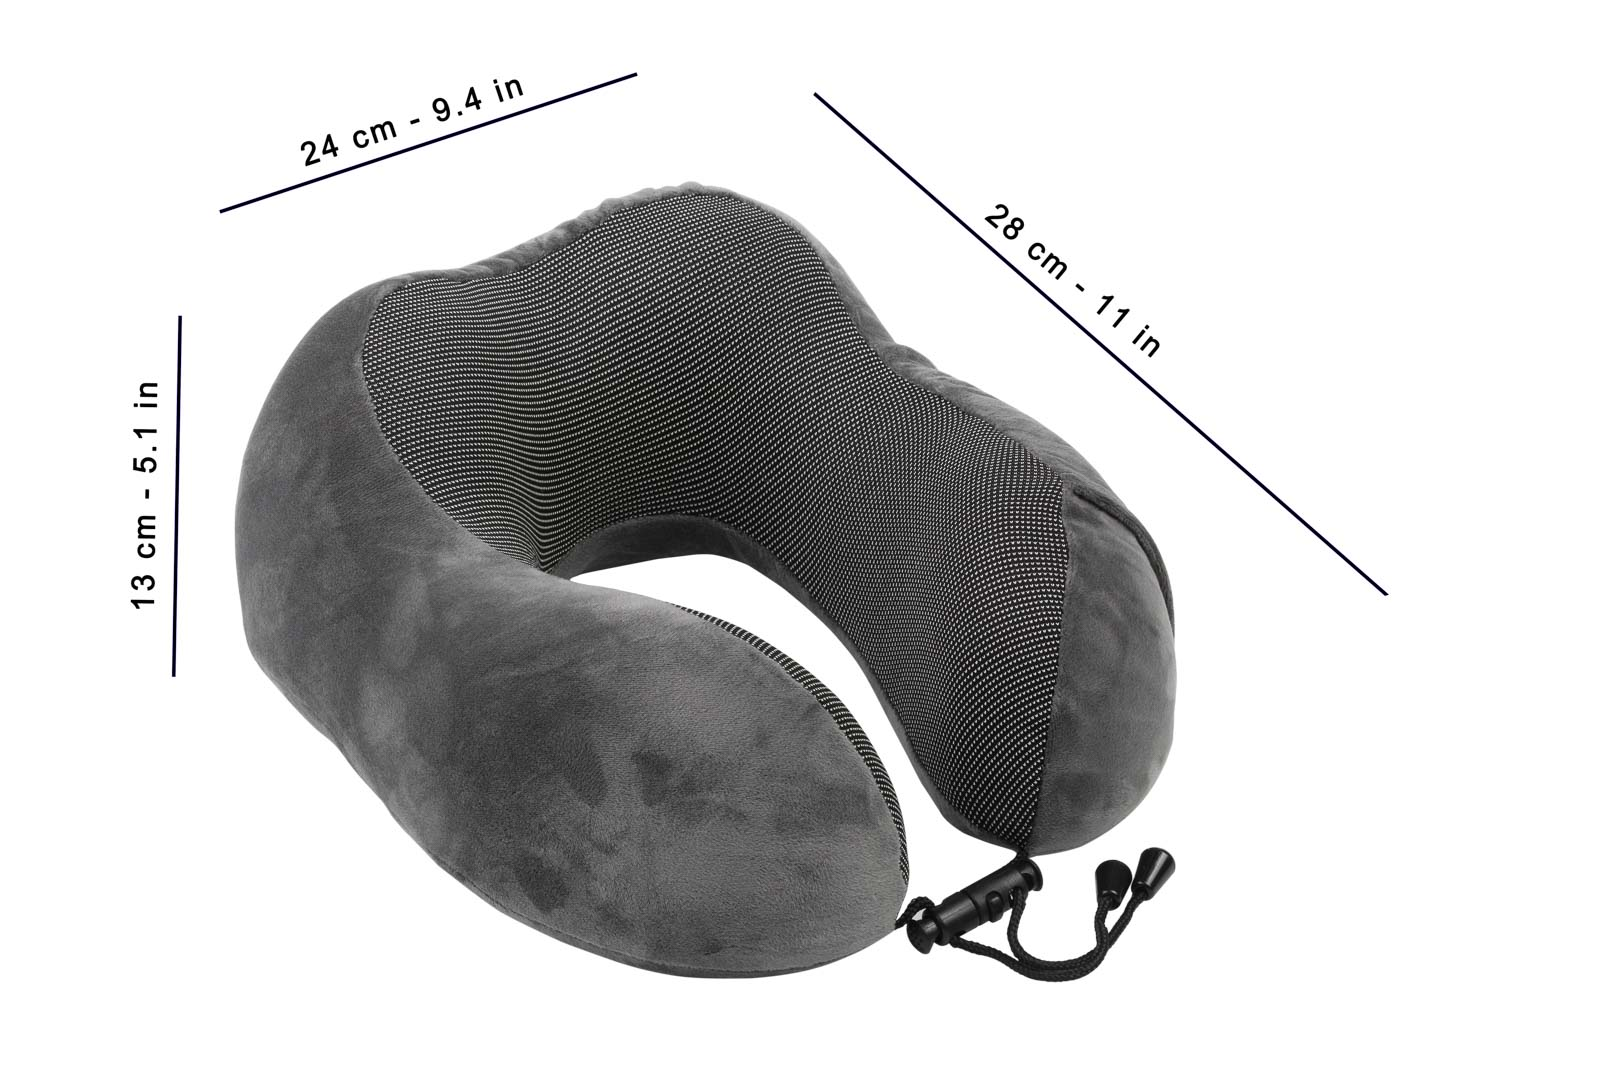 Jera Travel Pillow with measurements for Amazon website